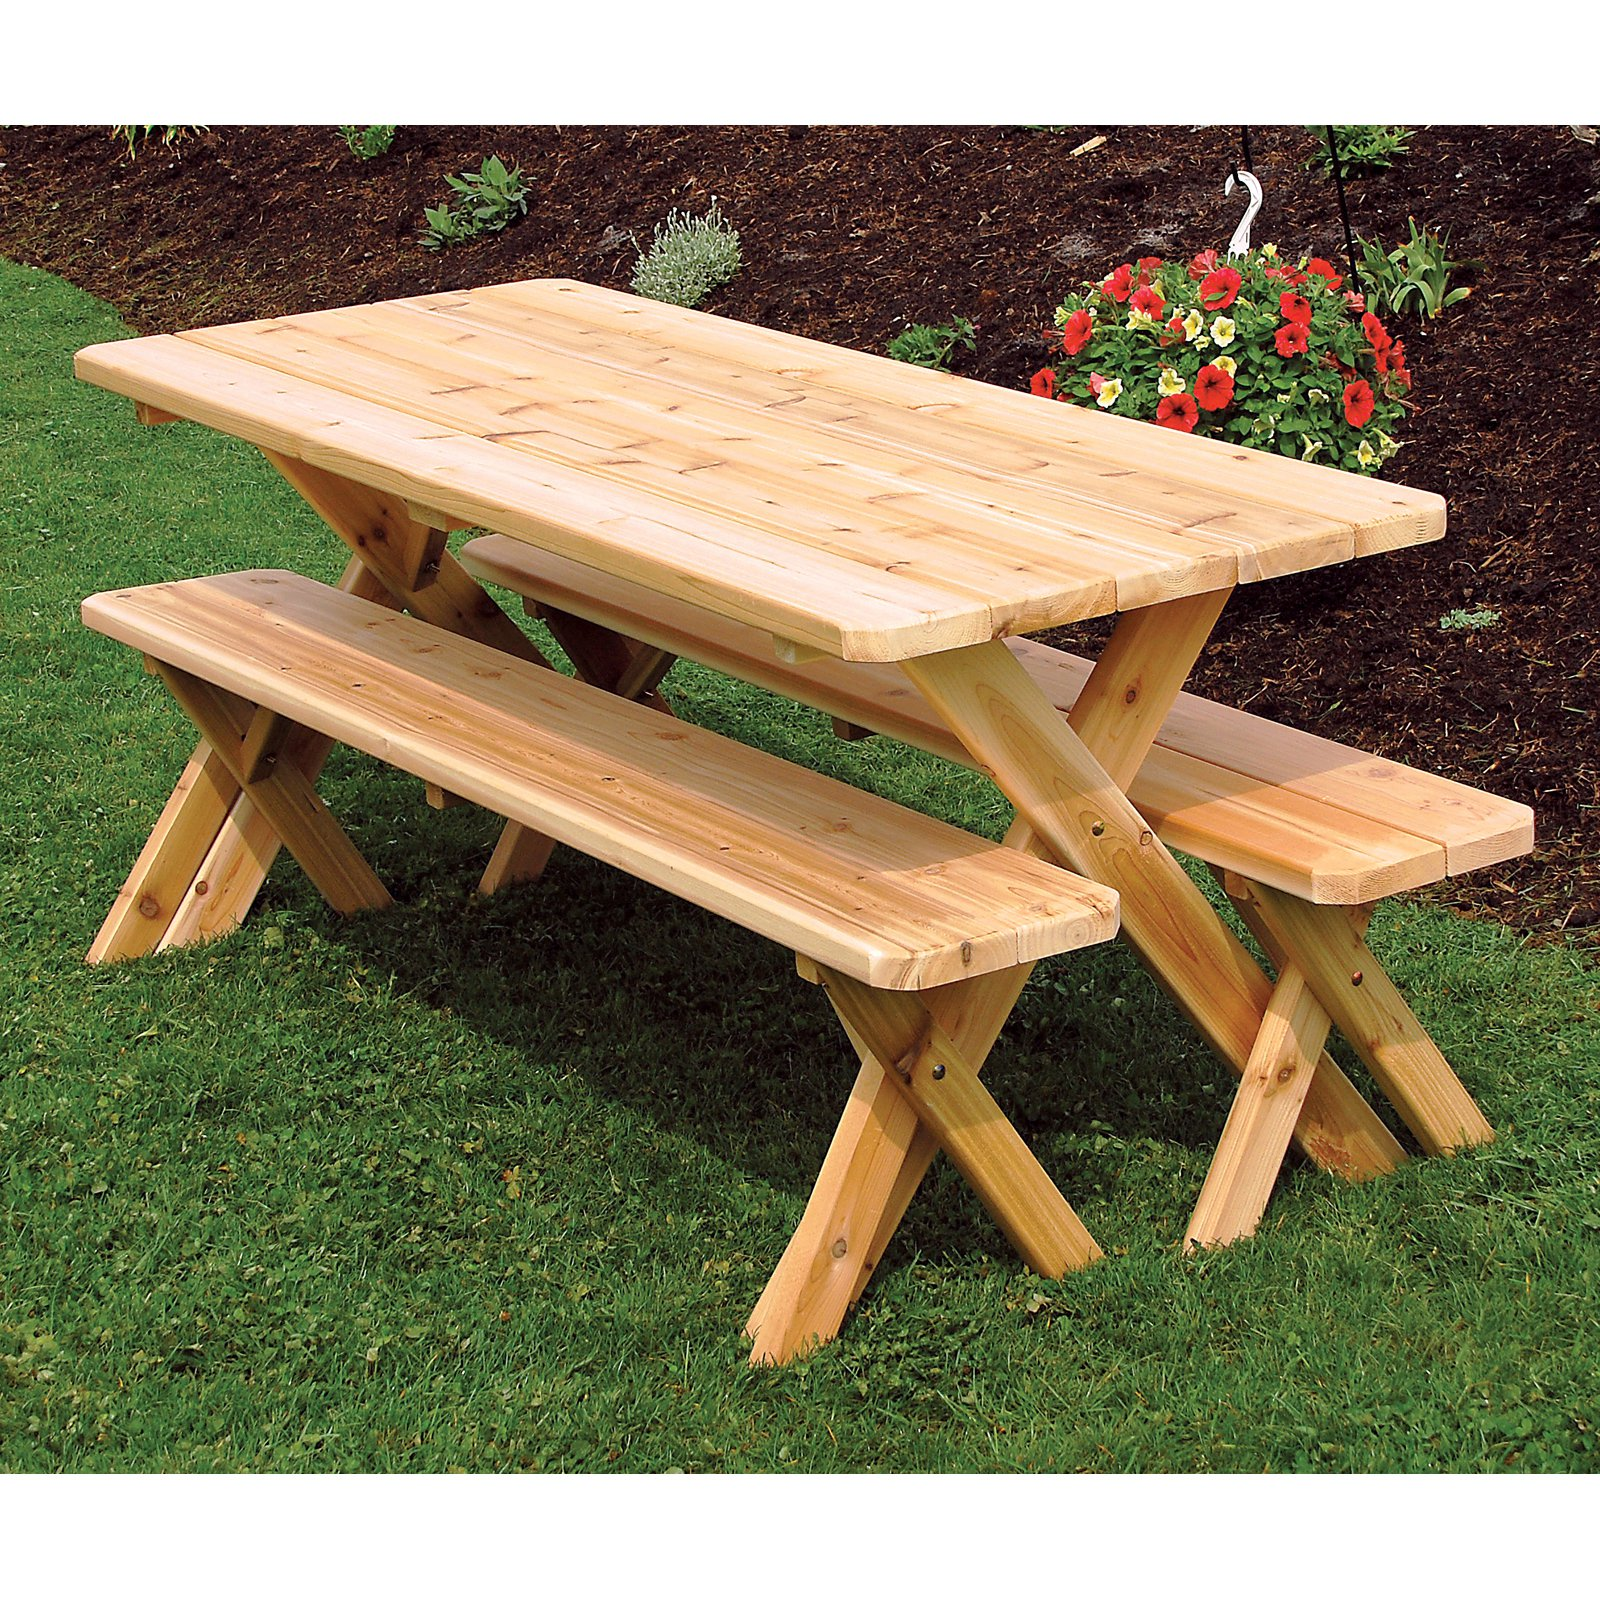 Genial A U0026amp; L Furniture Western Red Cedar Crossleg Picnic Table With 2 Benches    Walmart.com